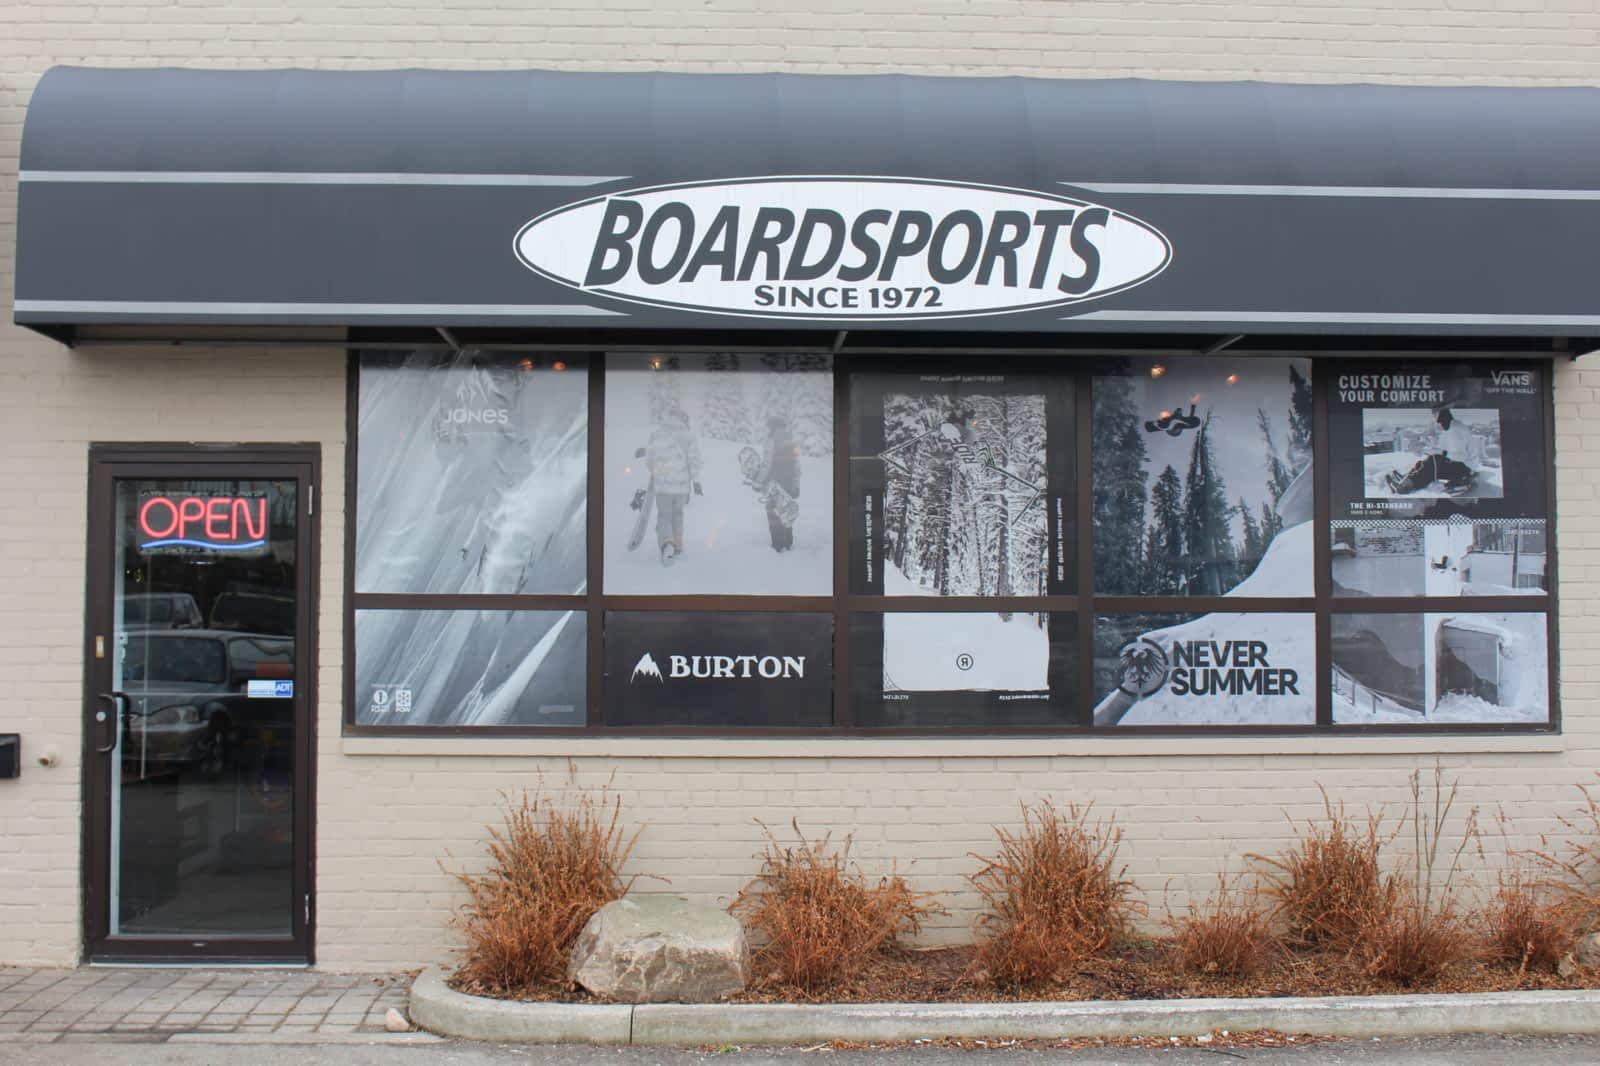 KIDS Boardsports Storefront in Leaside, Toronto